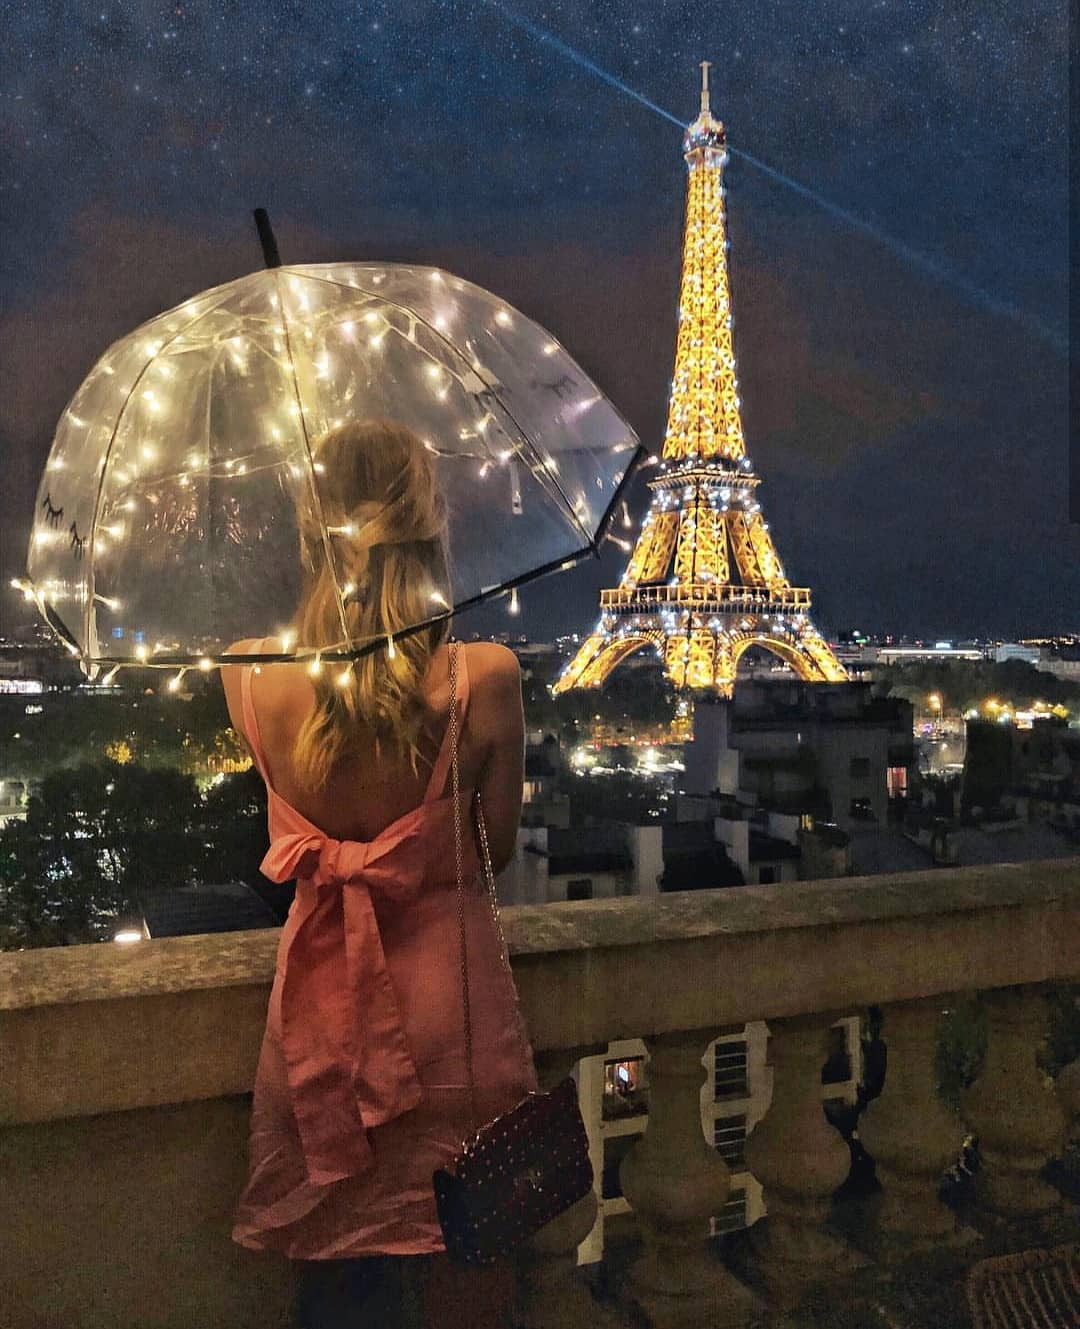 Pink Dress With Open Back And Tie Knot For Summer In Paris 2019